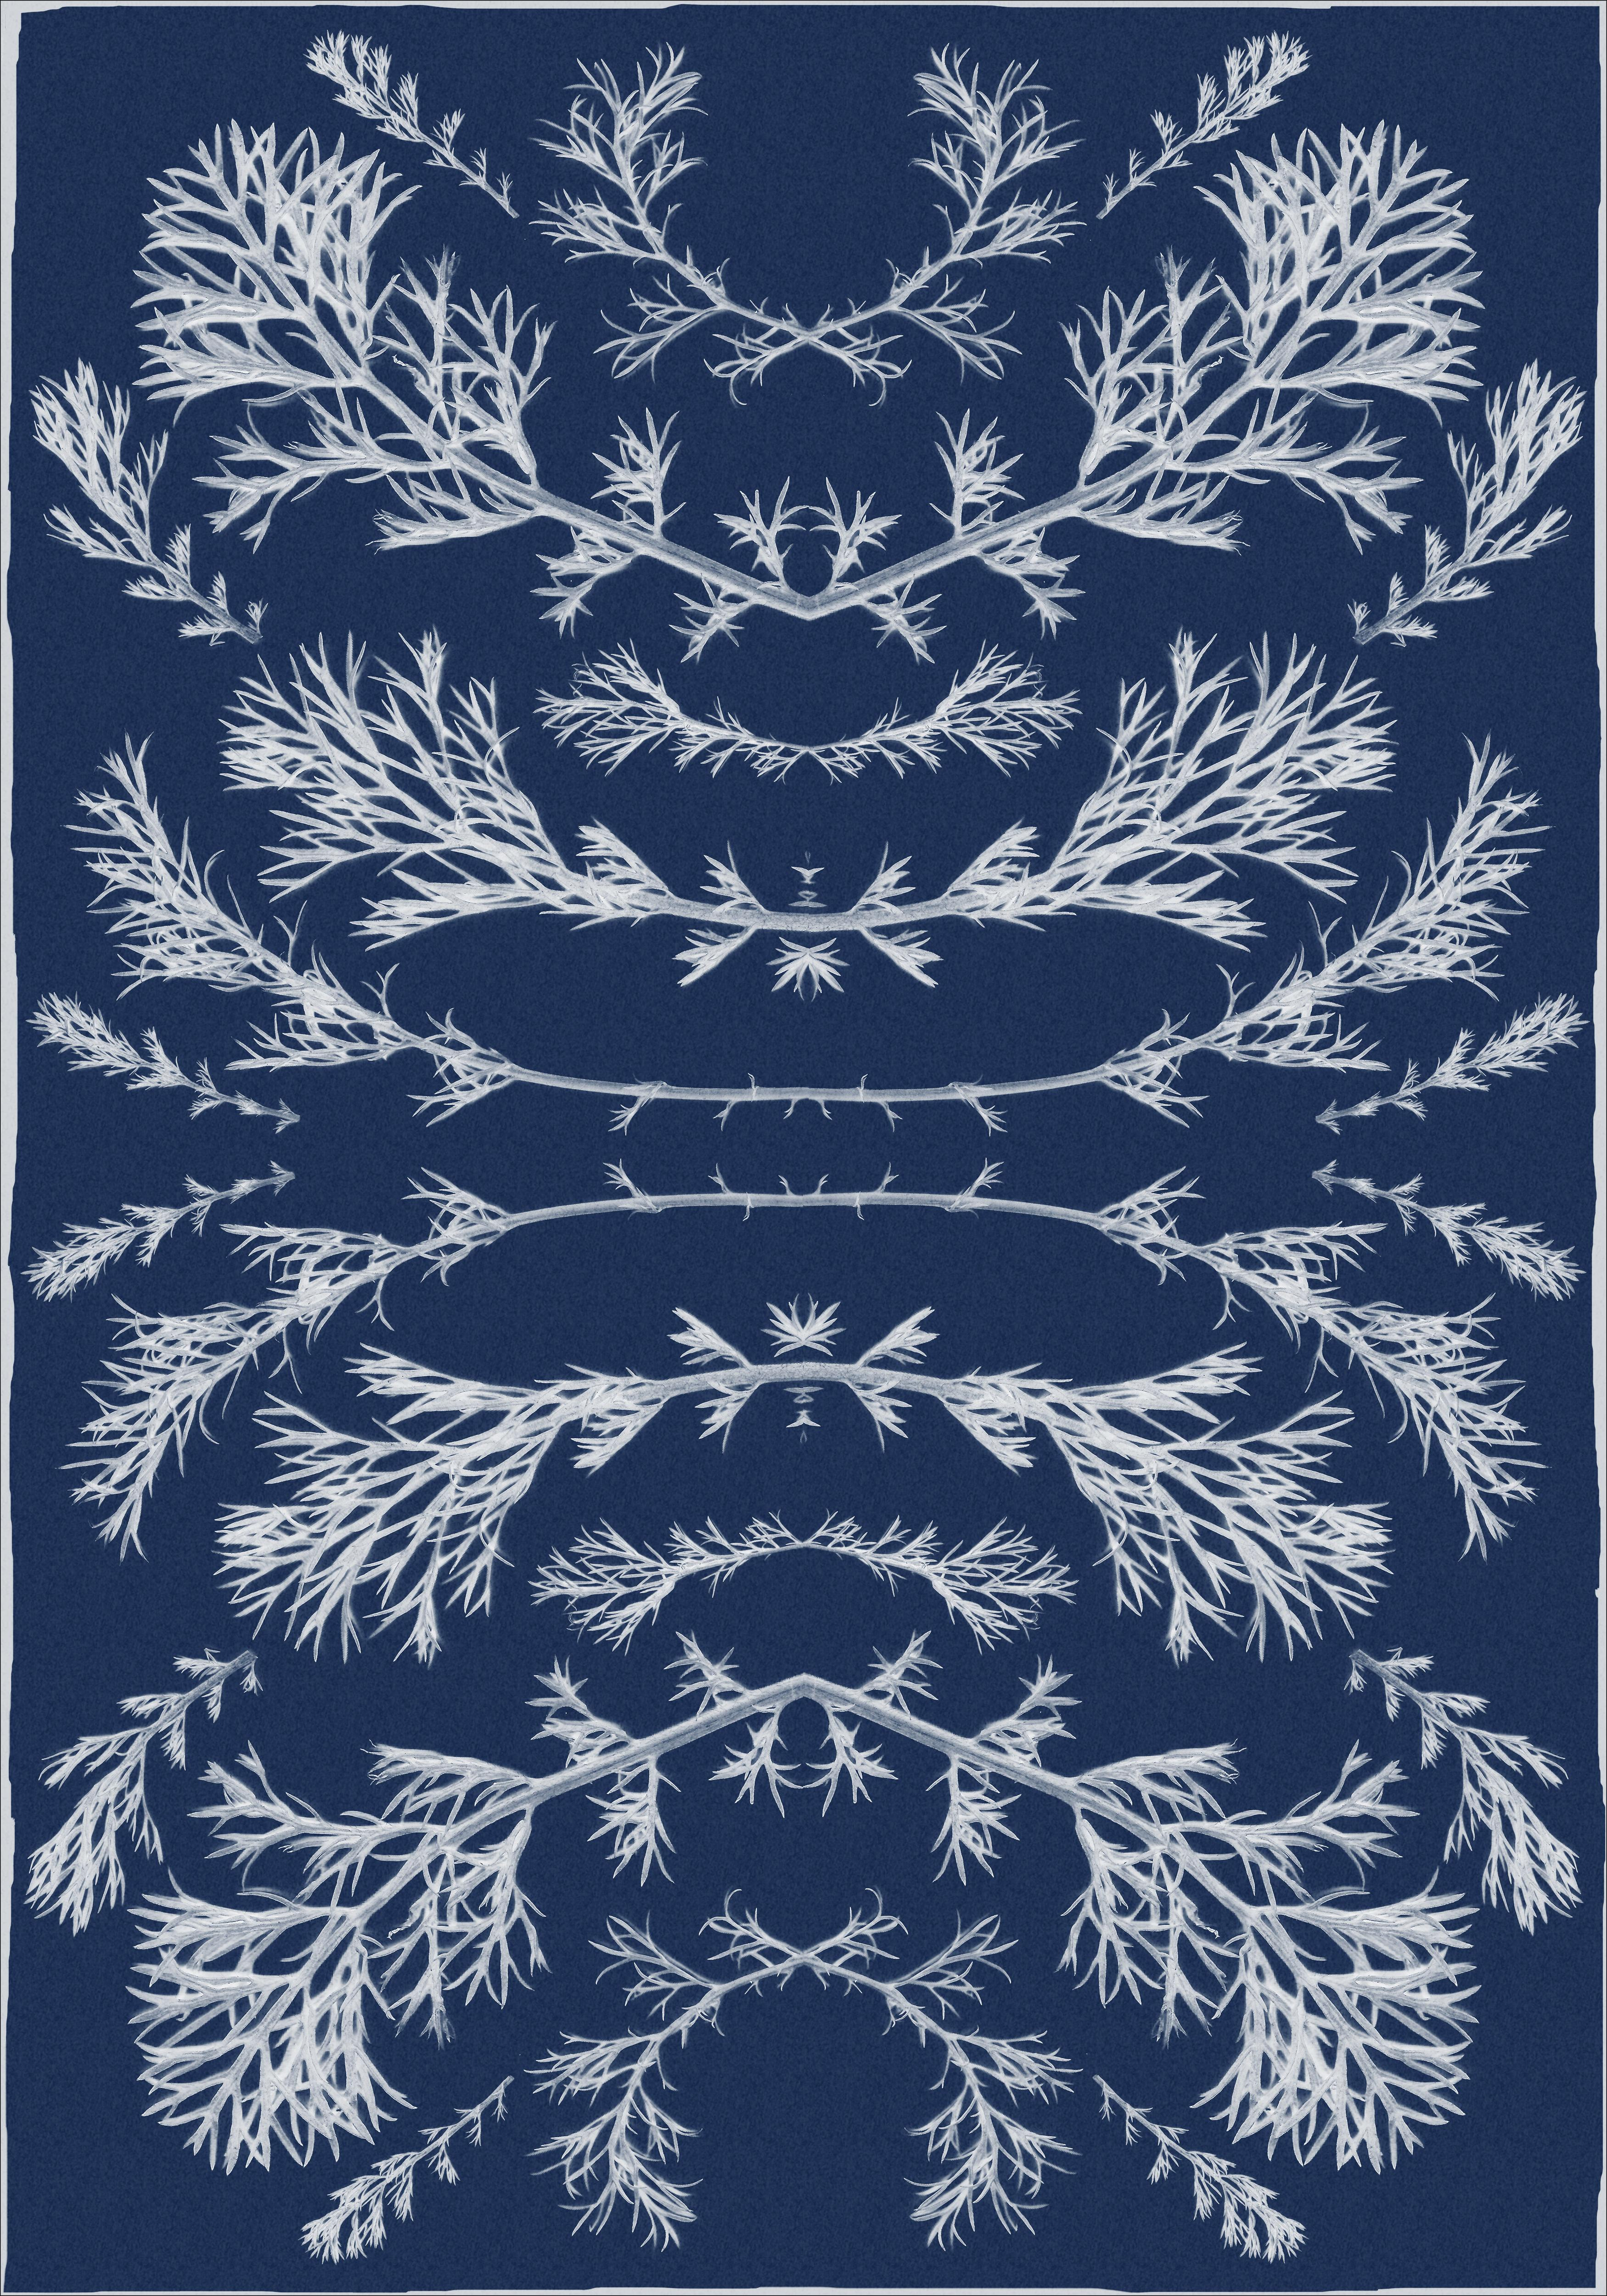 Botanical Composition Cyanotype of Vintage Pressed Flowers, White and Blue